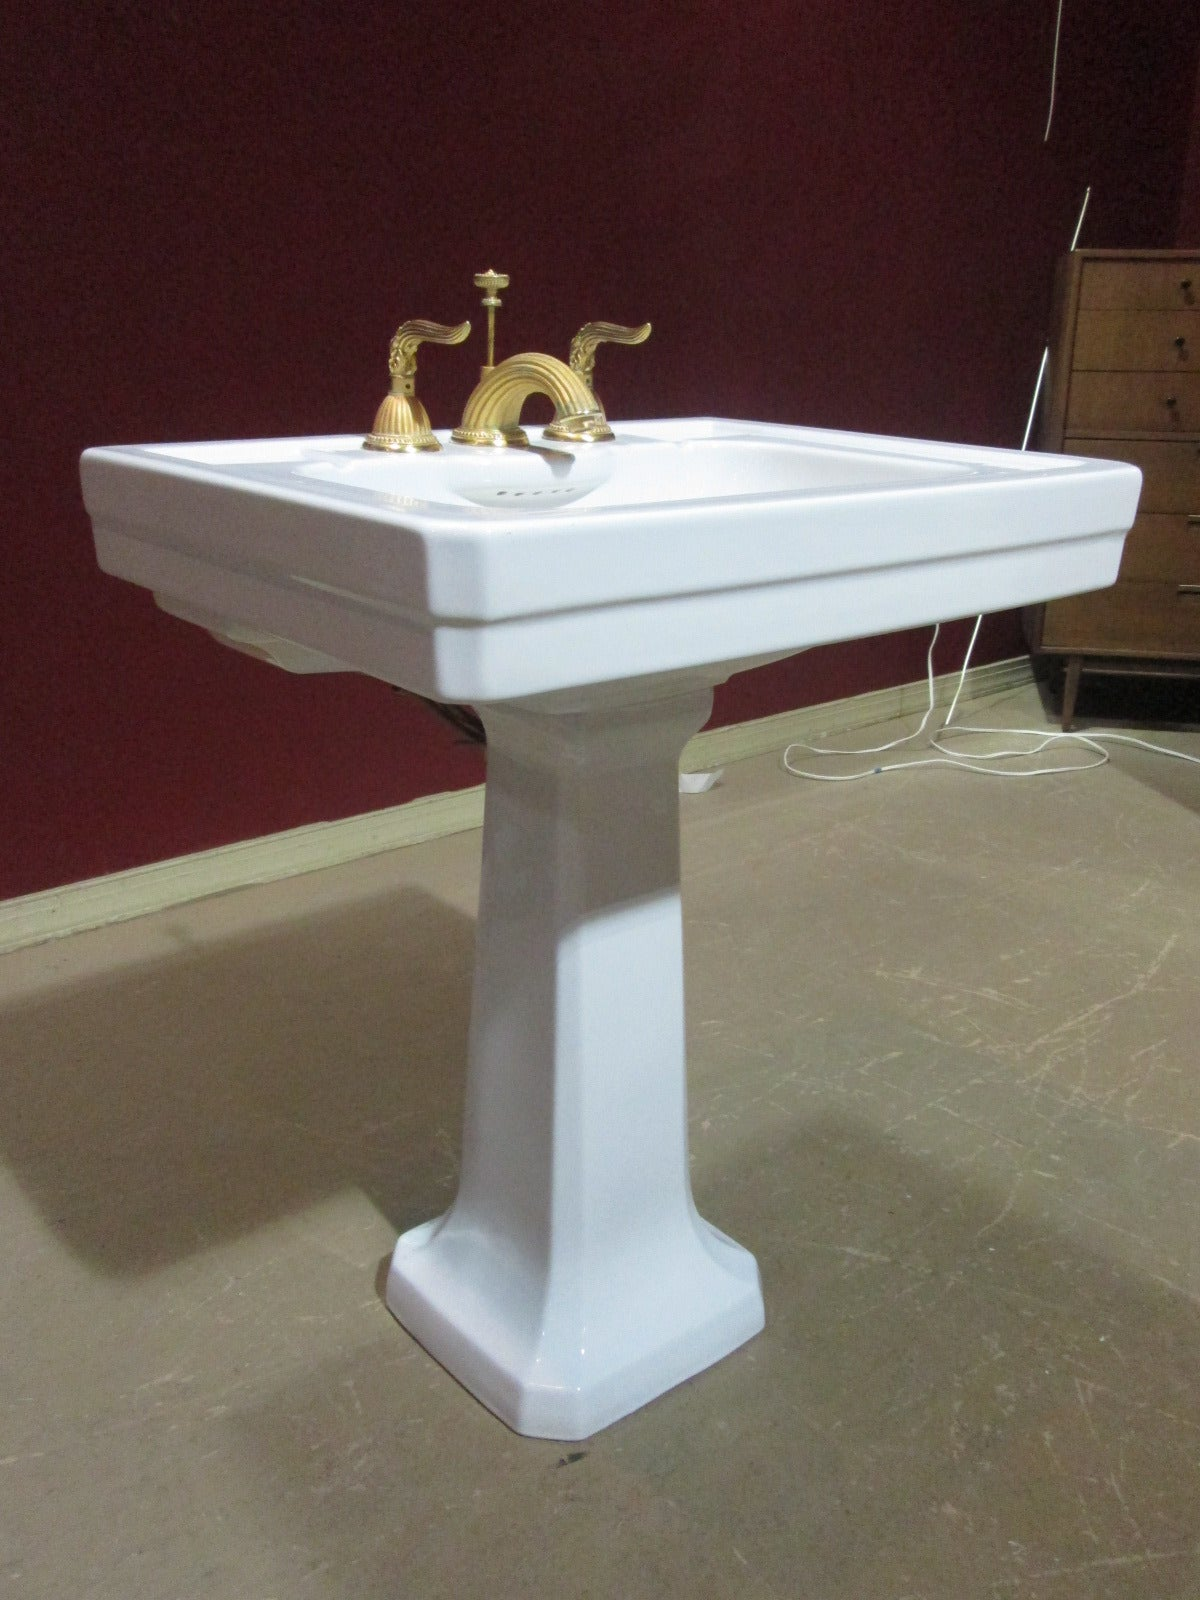 Italian Pedestal Porcelain Sink with Gold Fixtures For Sale at 1stdibs